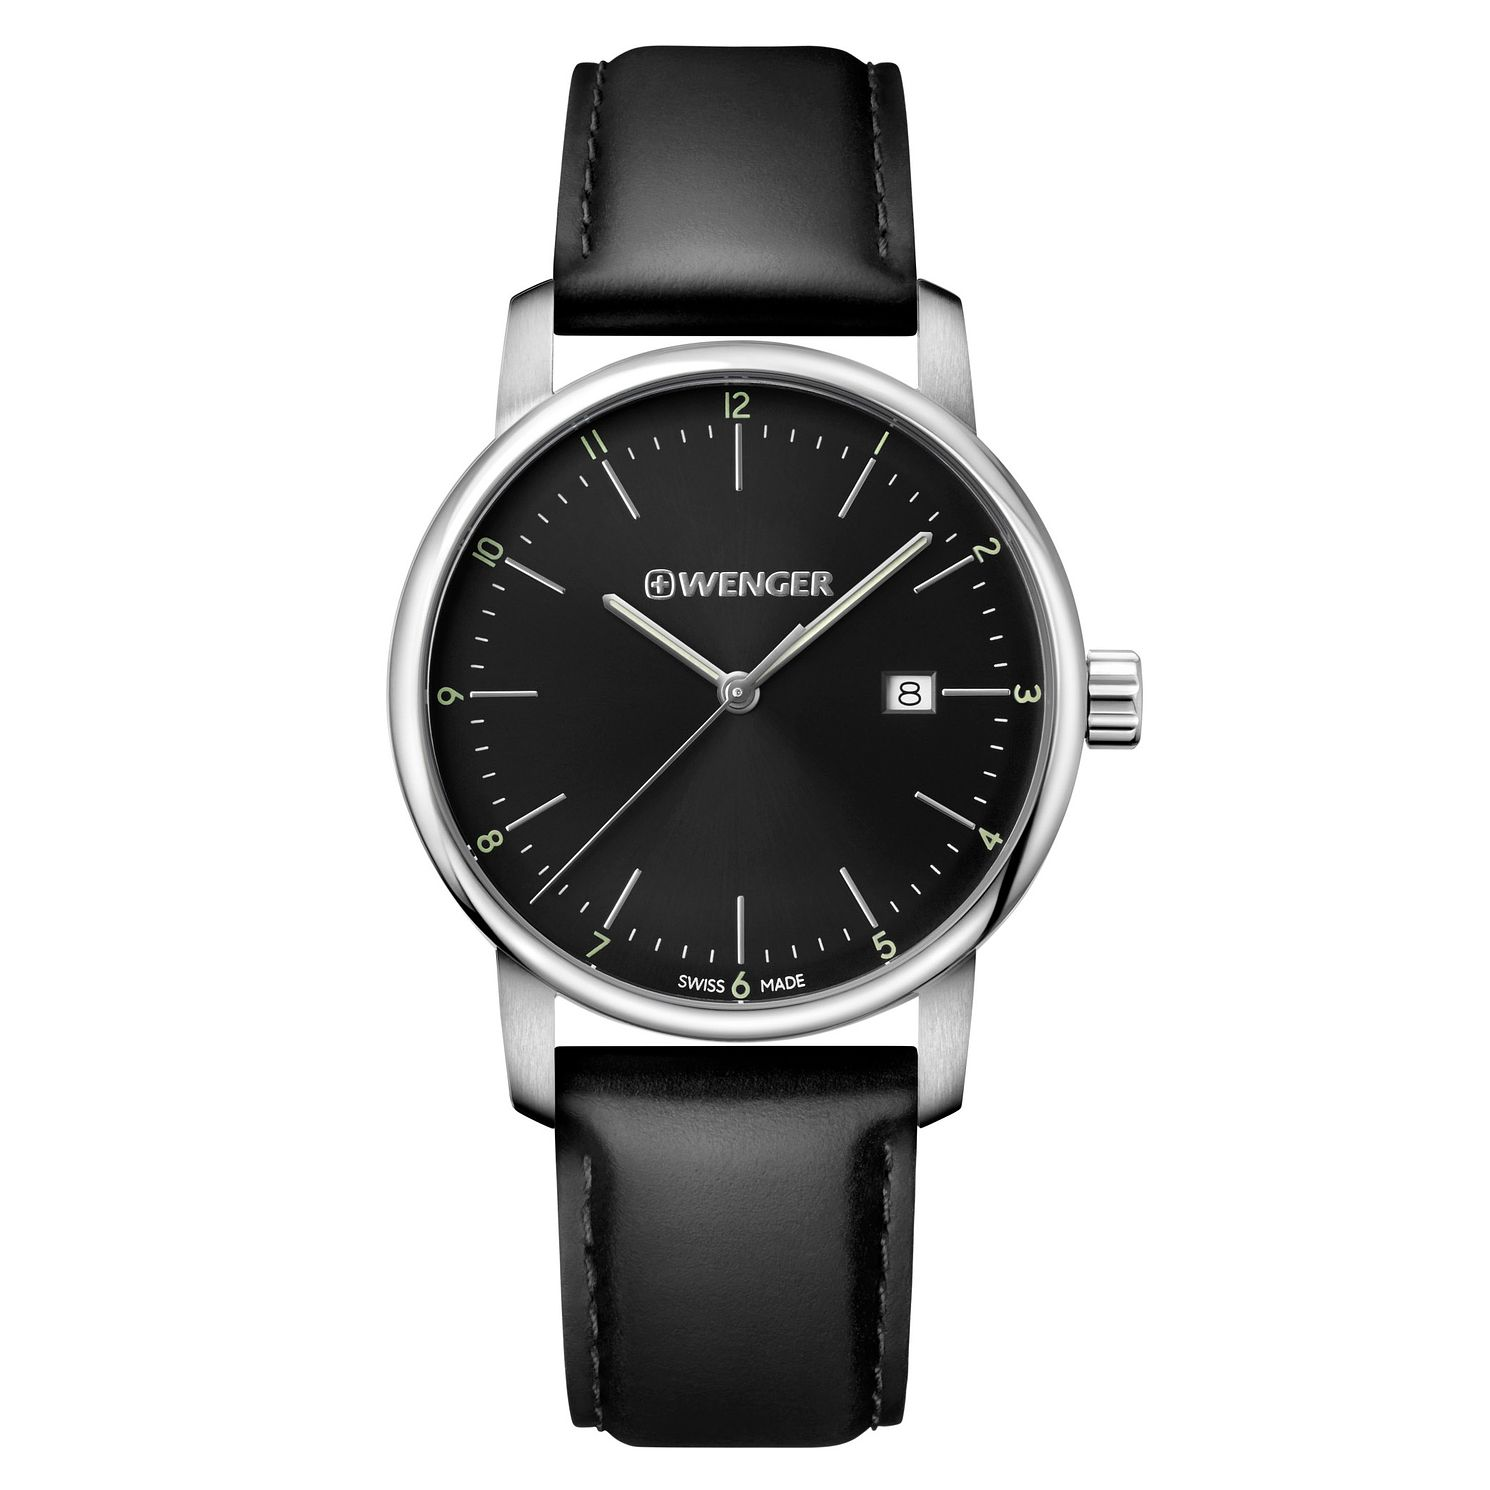 Wenger Urban Classic Men's Black Leather Strap Watch - Product number 8368333